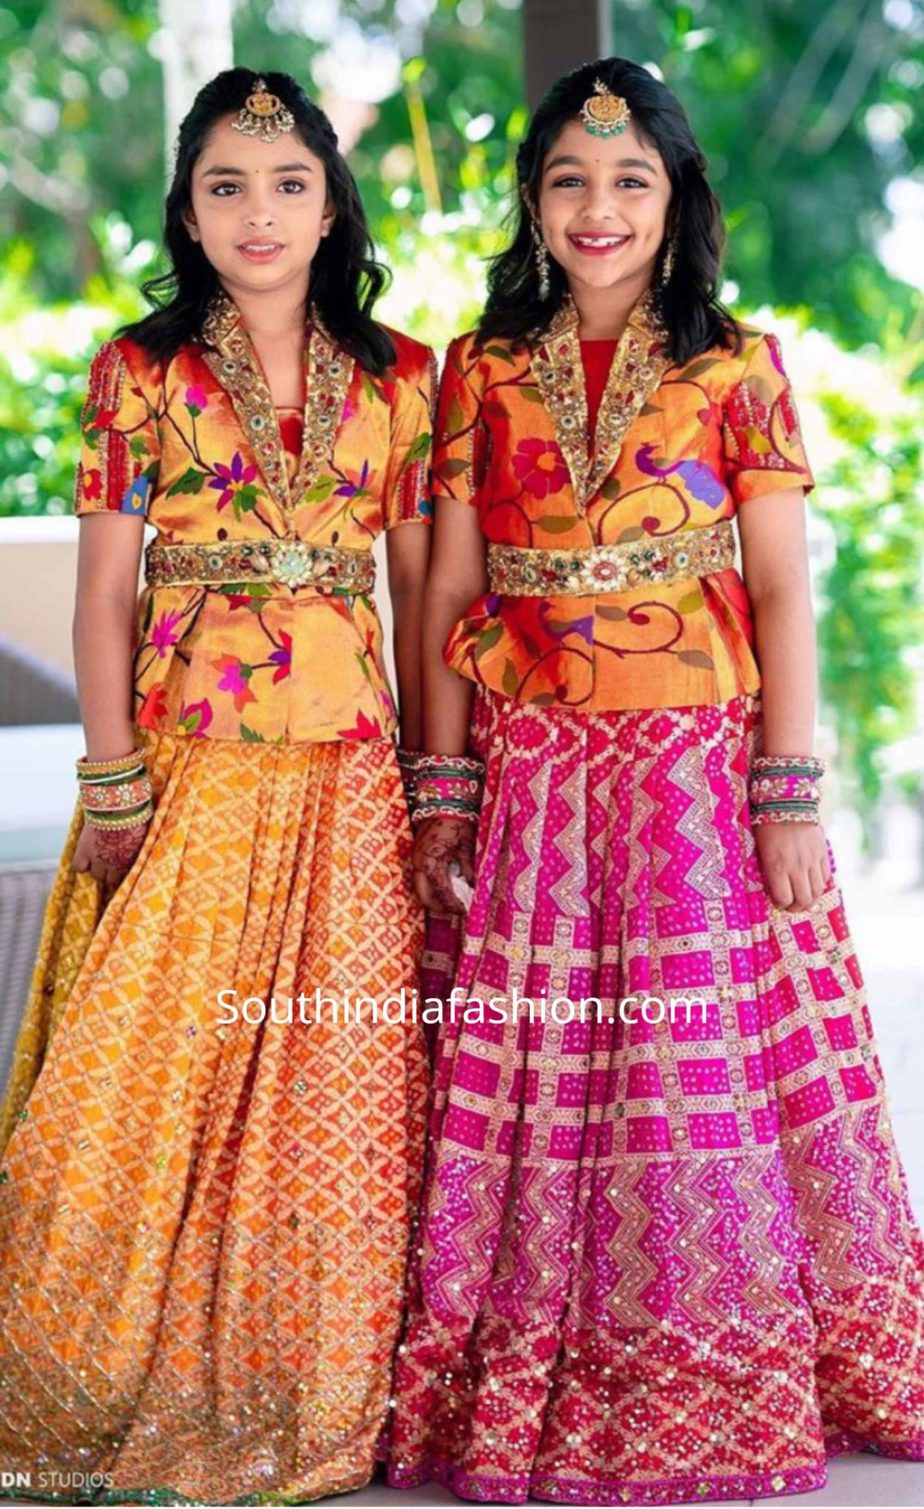 viranica manchu daughters in pattu lehengas